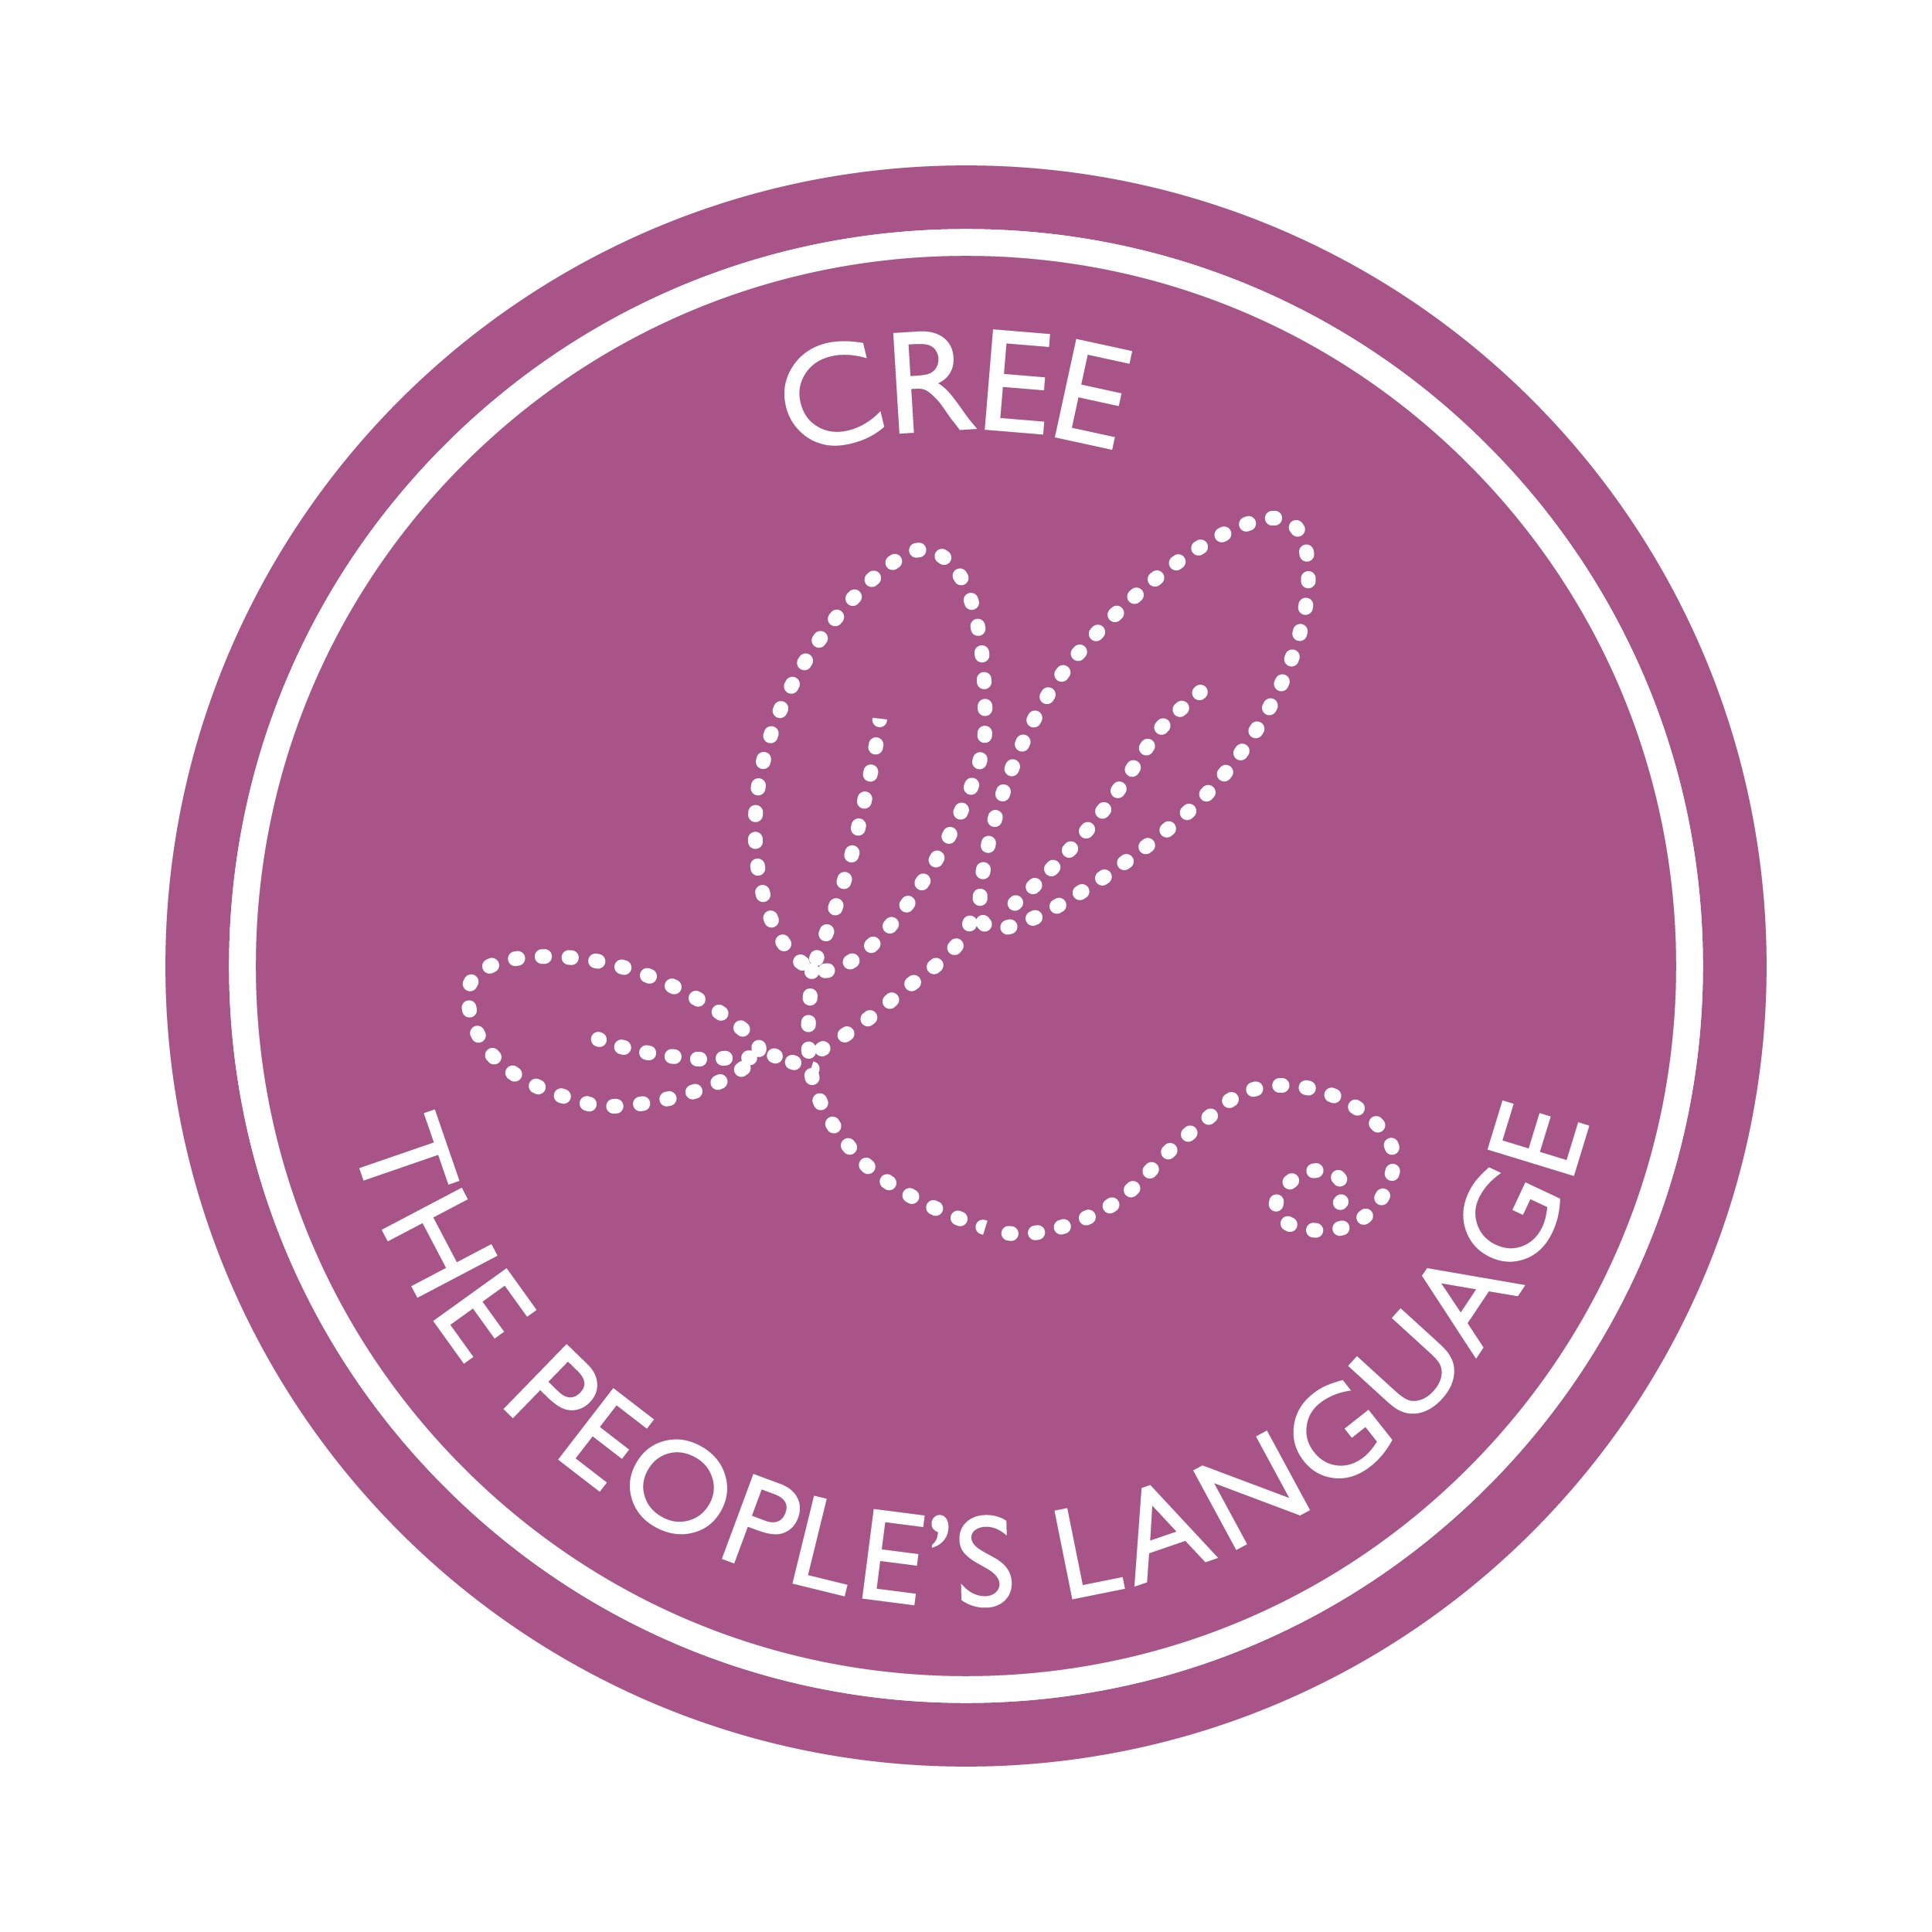 Purple circle logo with white stitching in the shape of plant leaves and white text saying Cree The People's Language